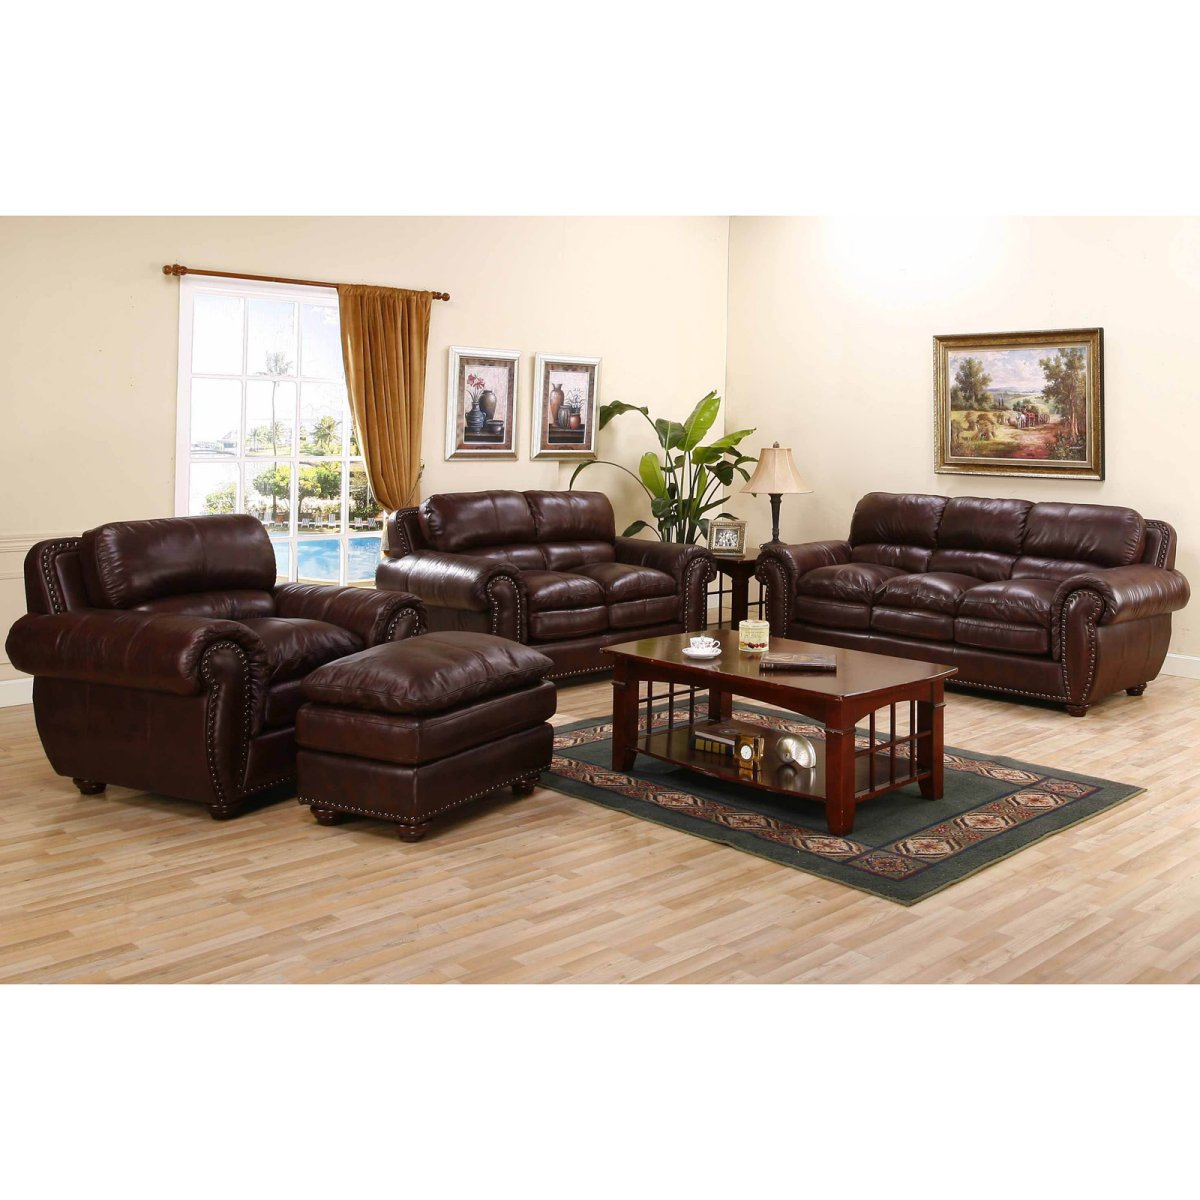 Gorgeous Interior Ideas With Big Sofas: Stunning Classic Style Brown Color Big Sofas Luxurious Accents